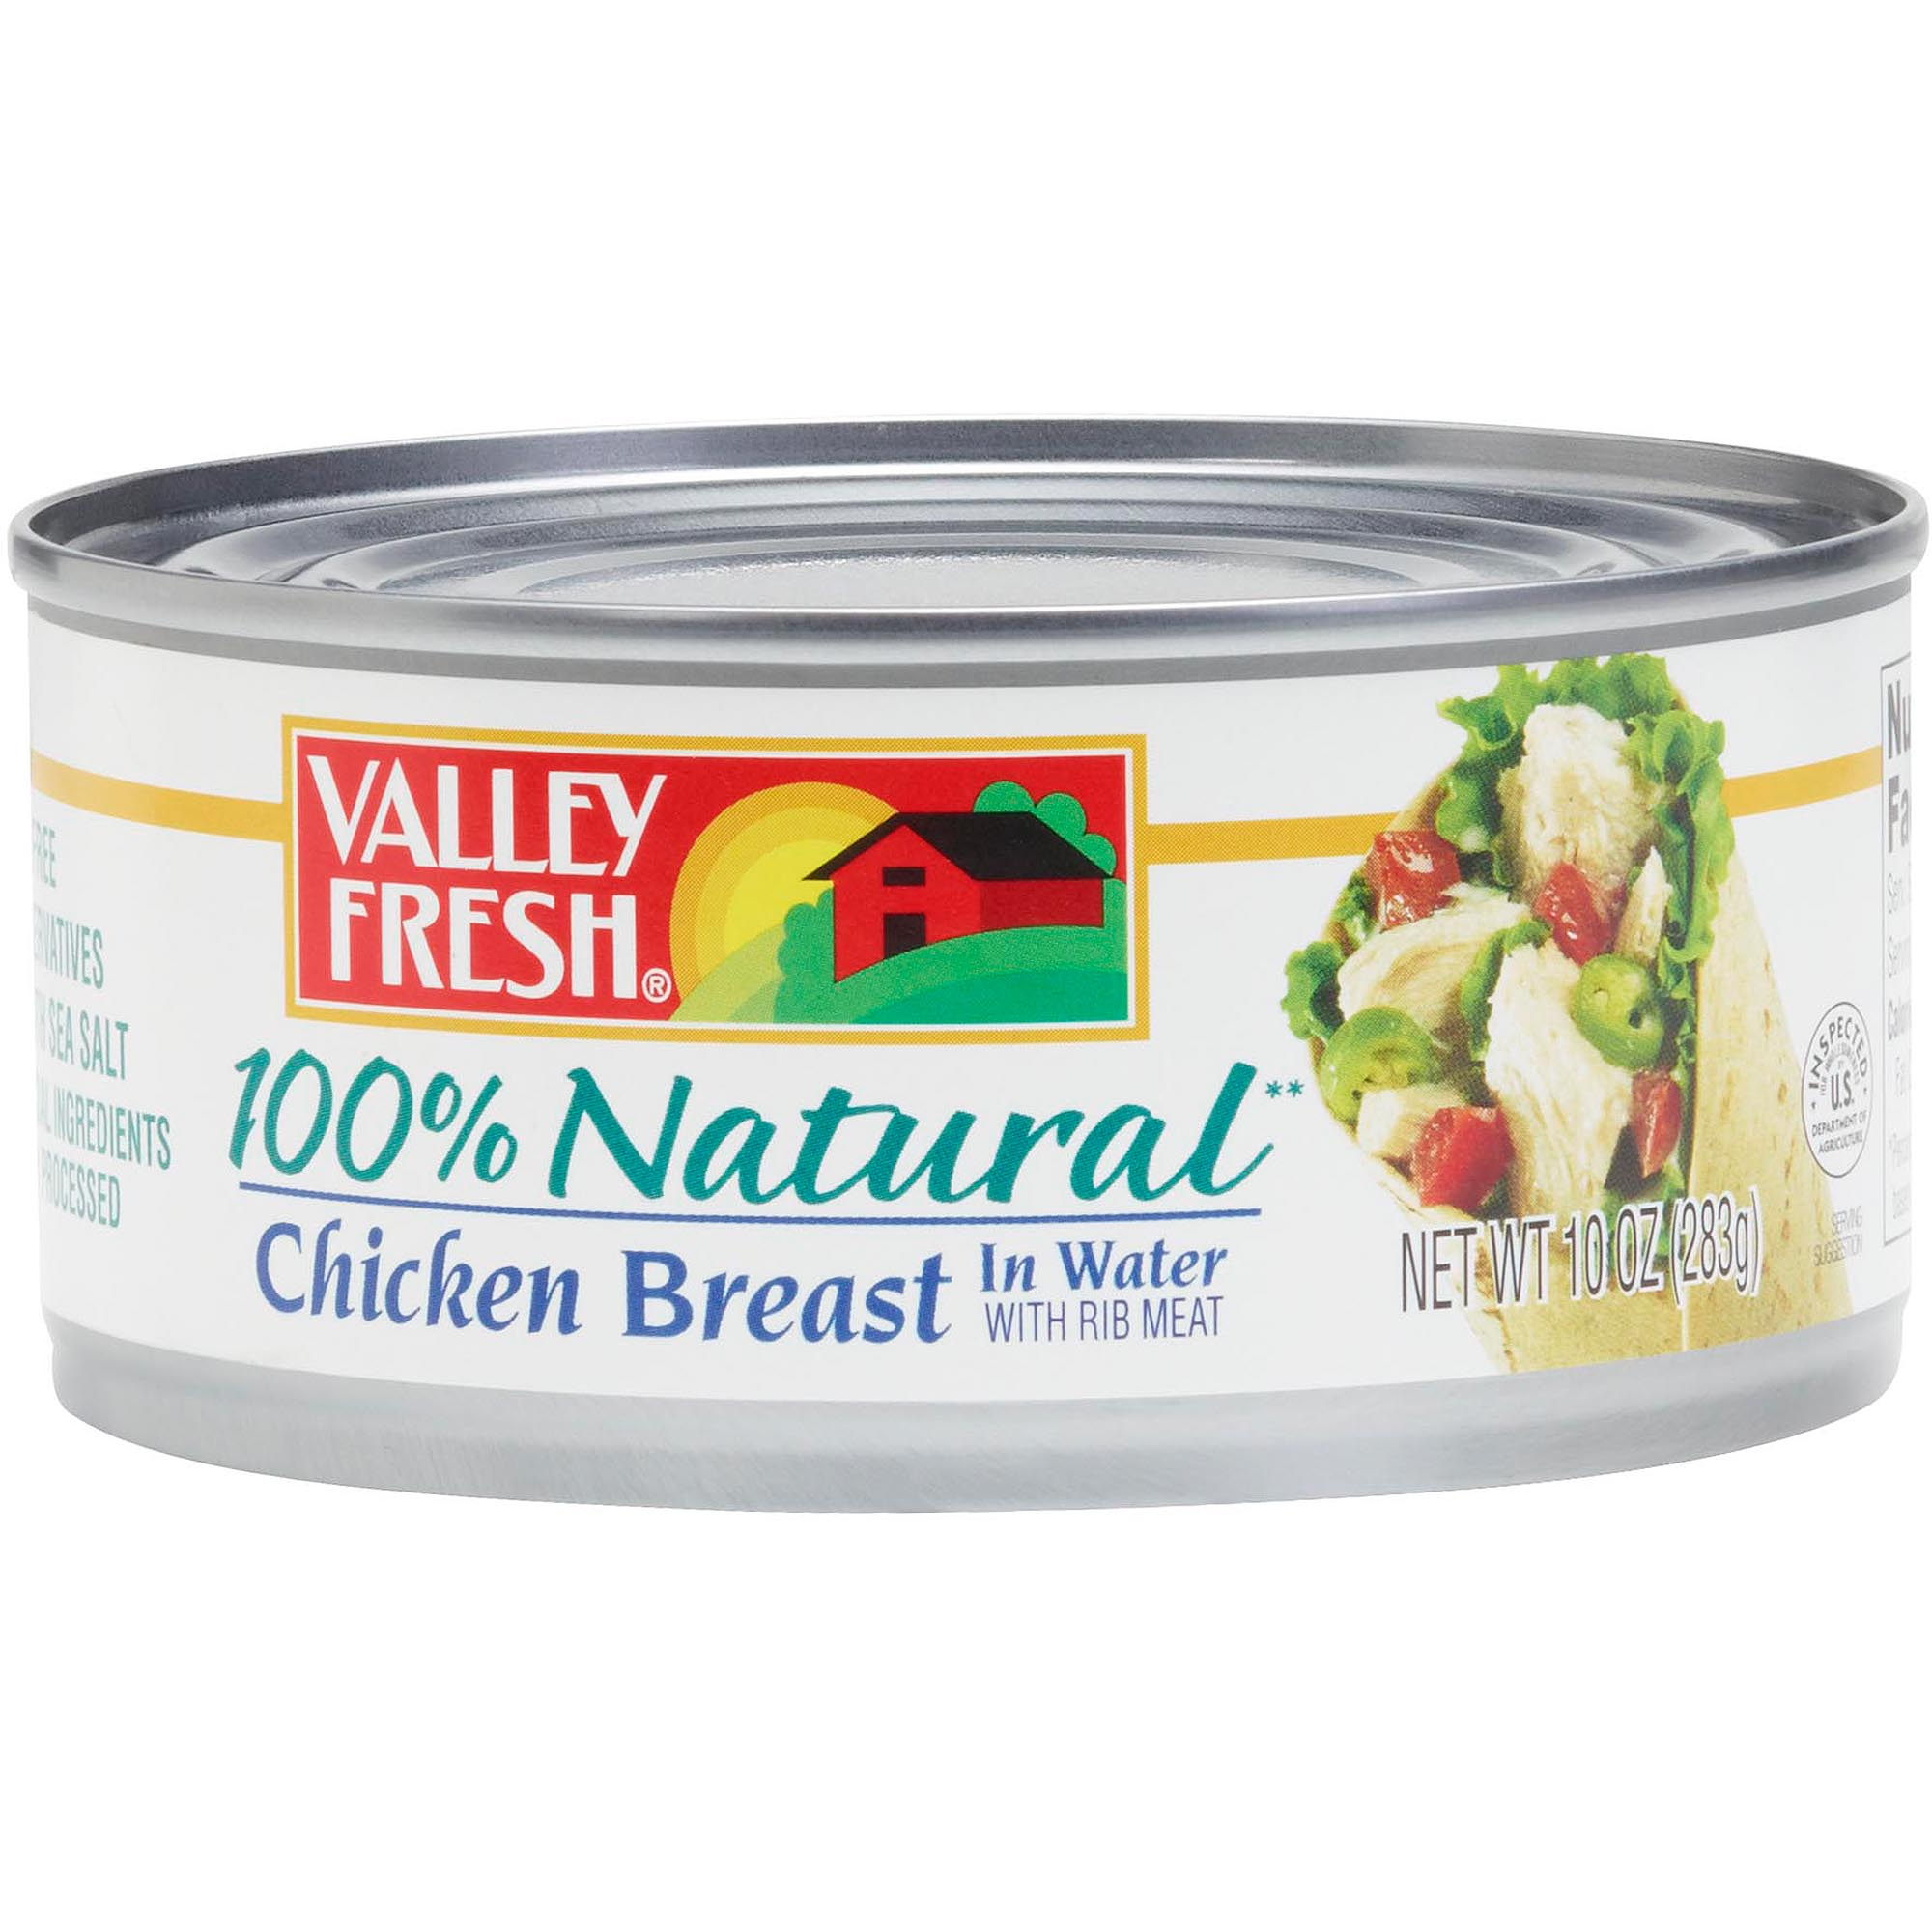 Valley Fresh 100% Natural White Chicken In Water, 12.5 oz